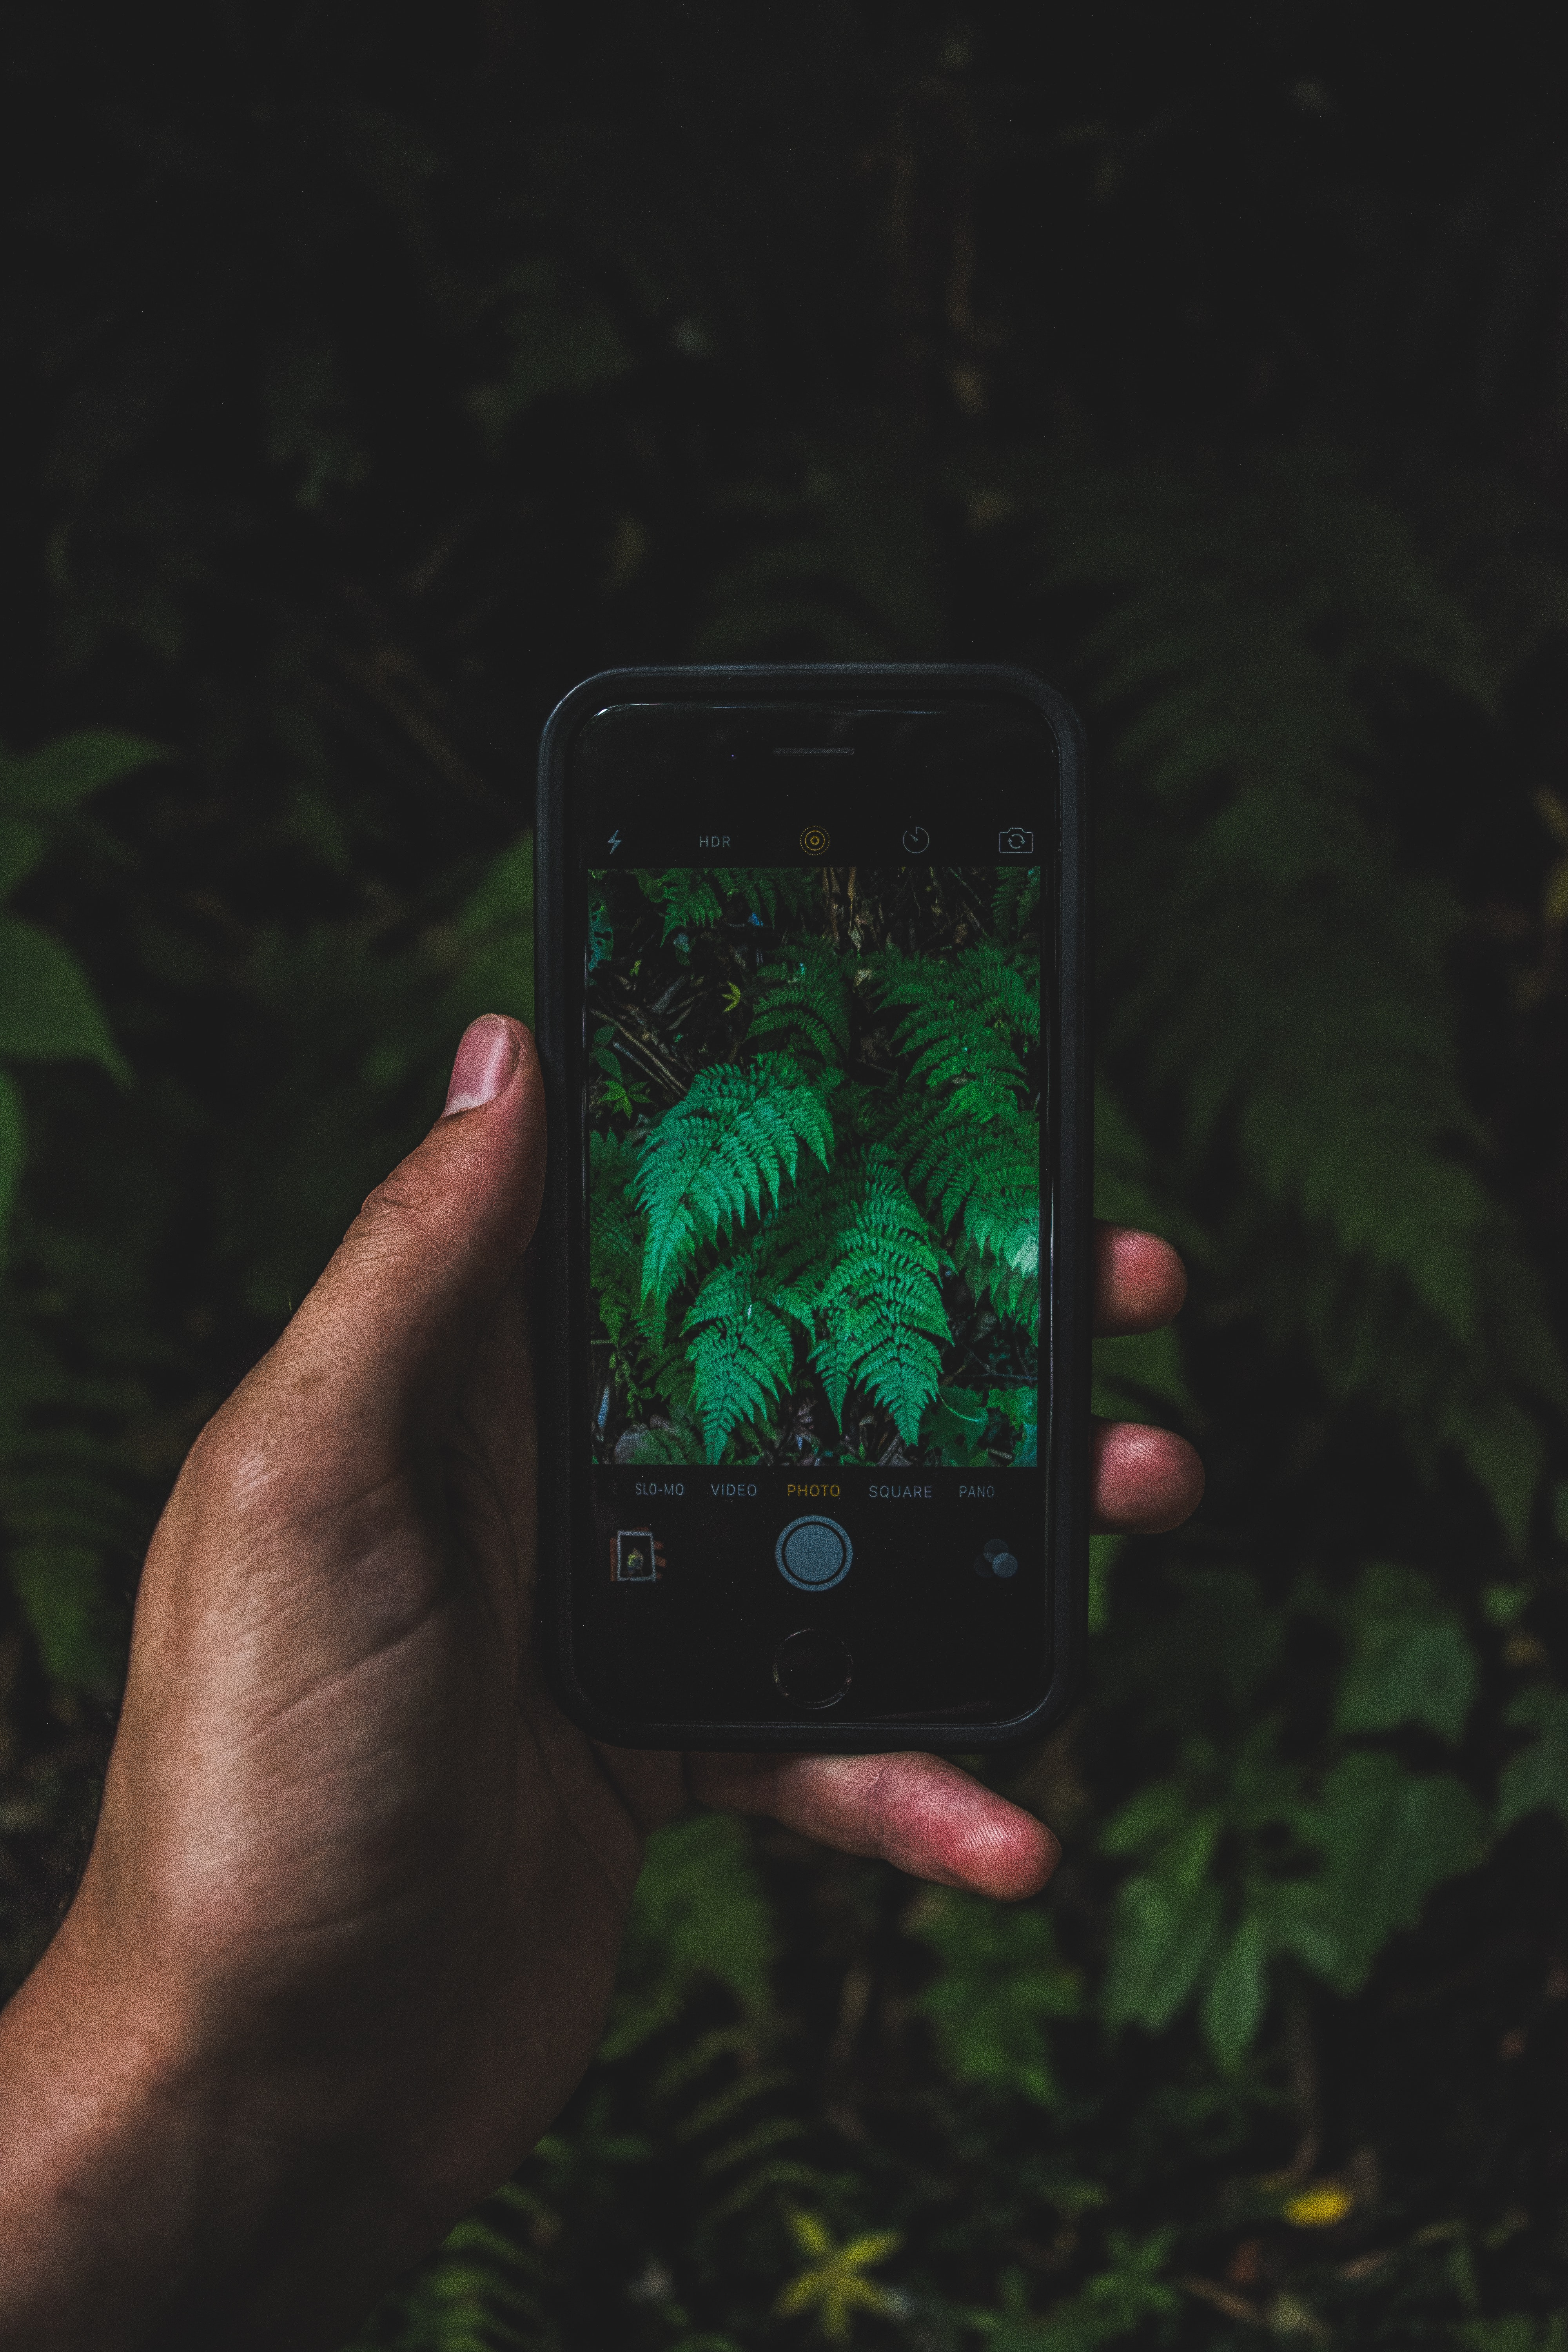 A person taking a photograph of fern leaves with a smartphone